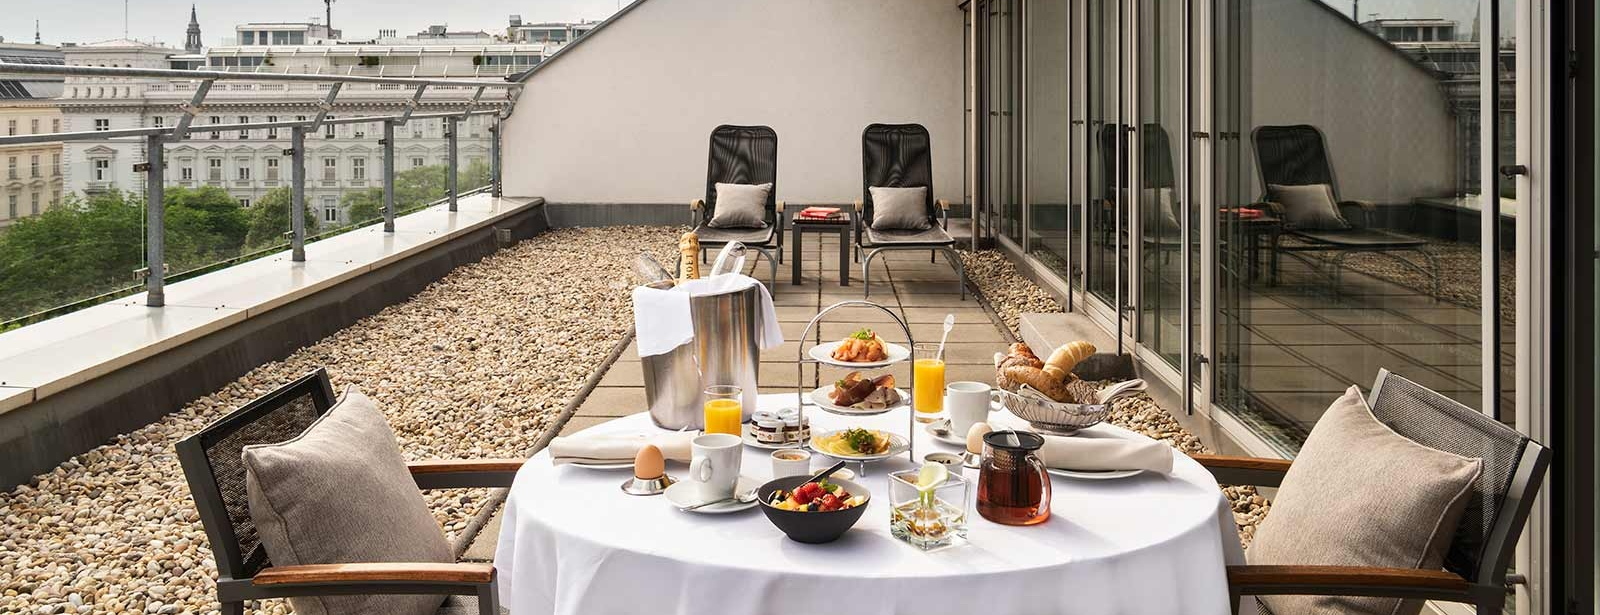 Le Méridien Vienna - Suites in Vienna - Rooftop Terrace Suite with breakfast and a view of Vienna